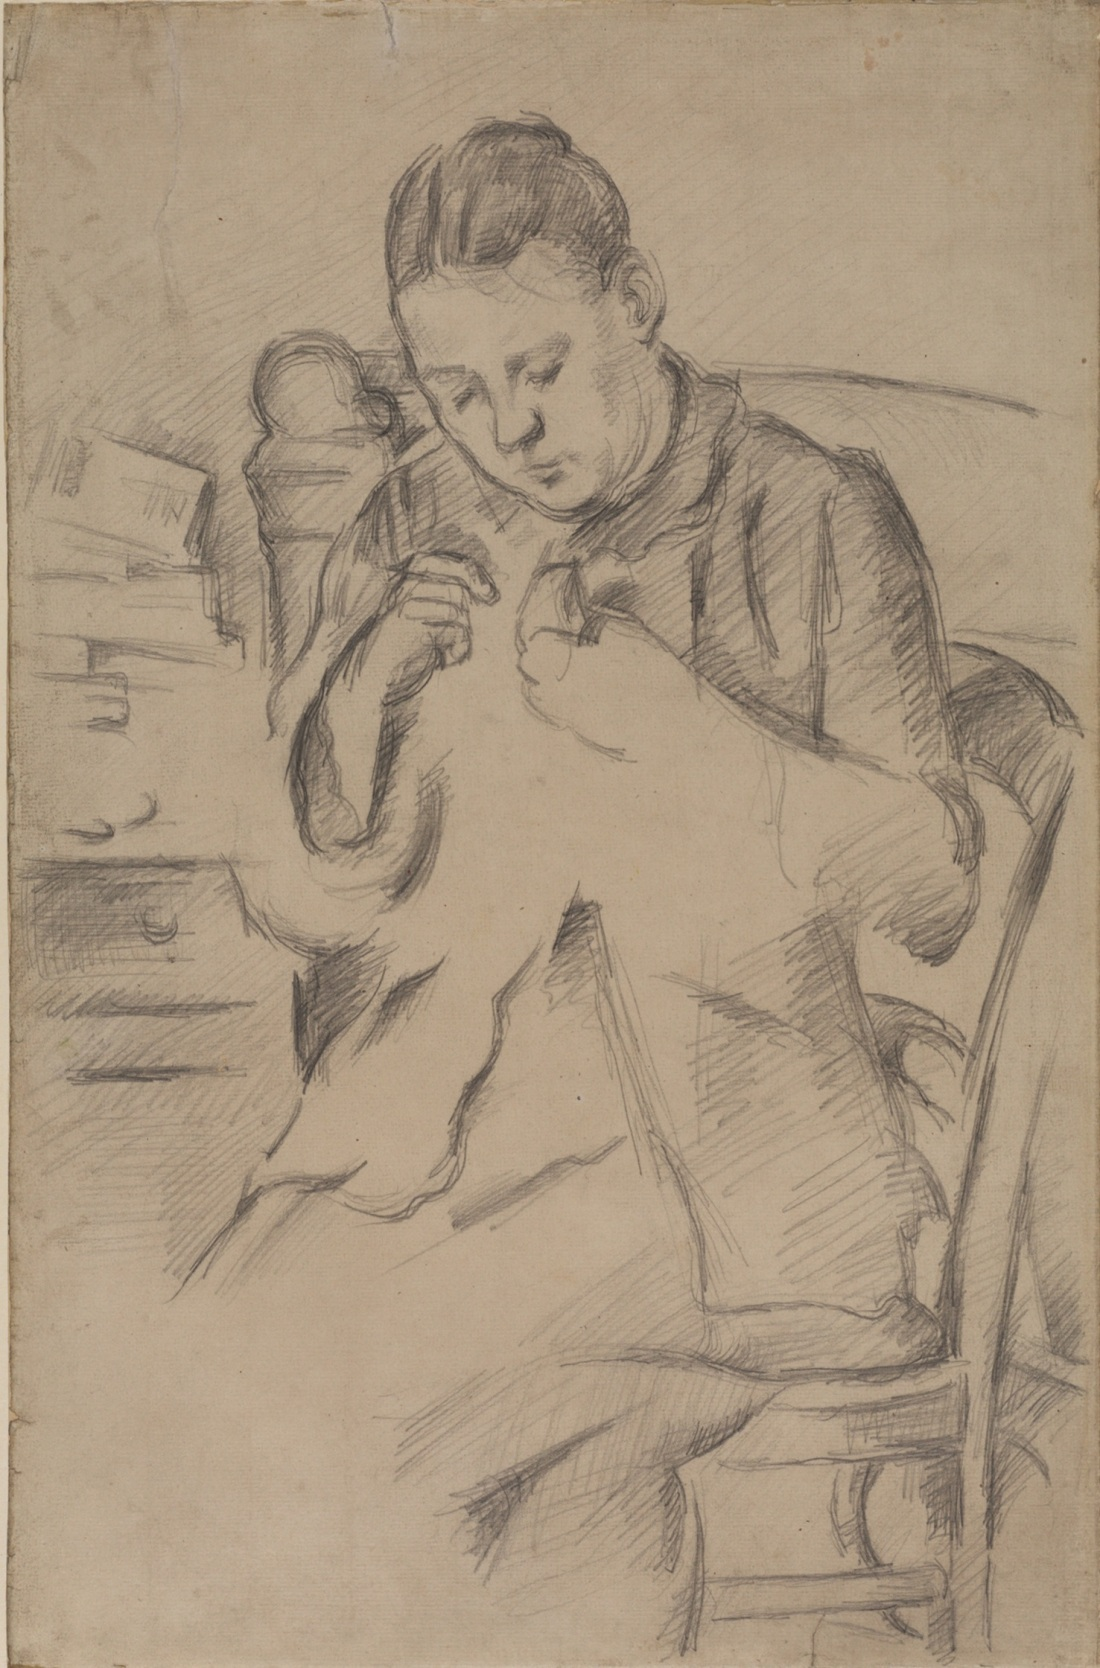 Paul Cezanne, Madame Cezanne Sewing. Collection of the Courtauld Institute of Art, London.